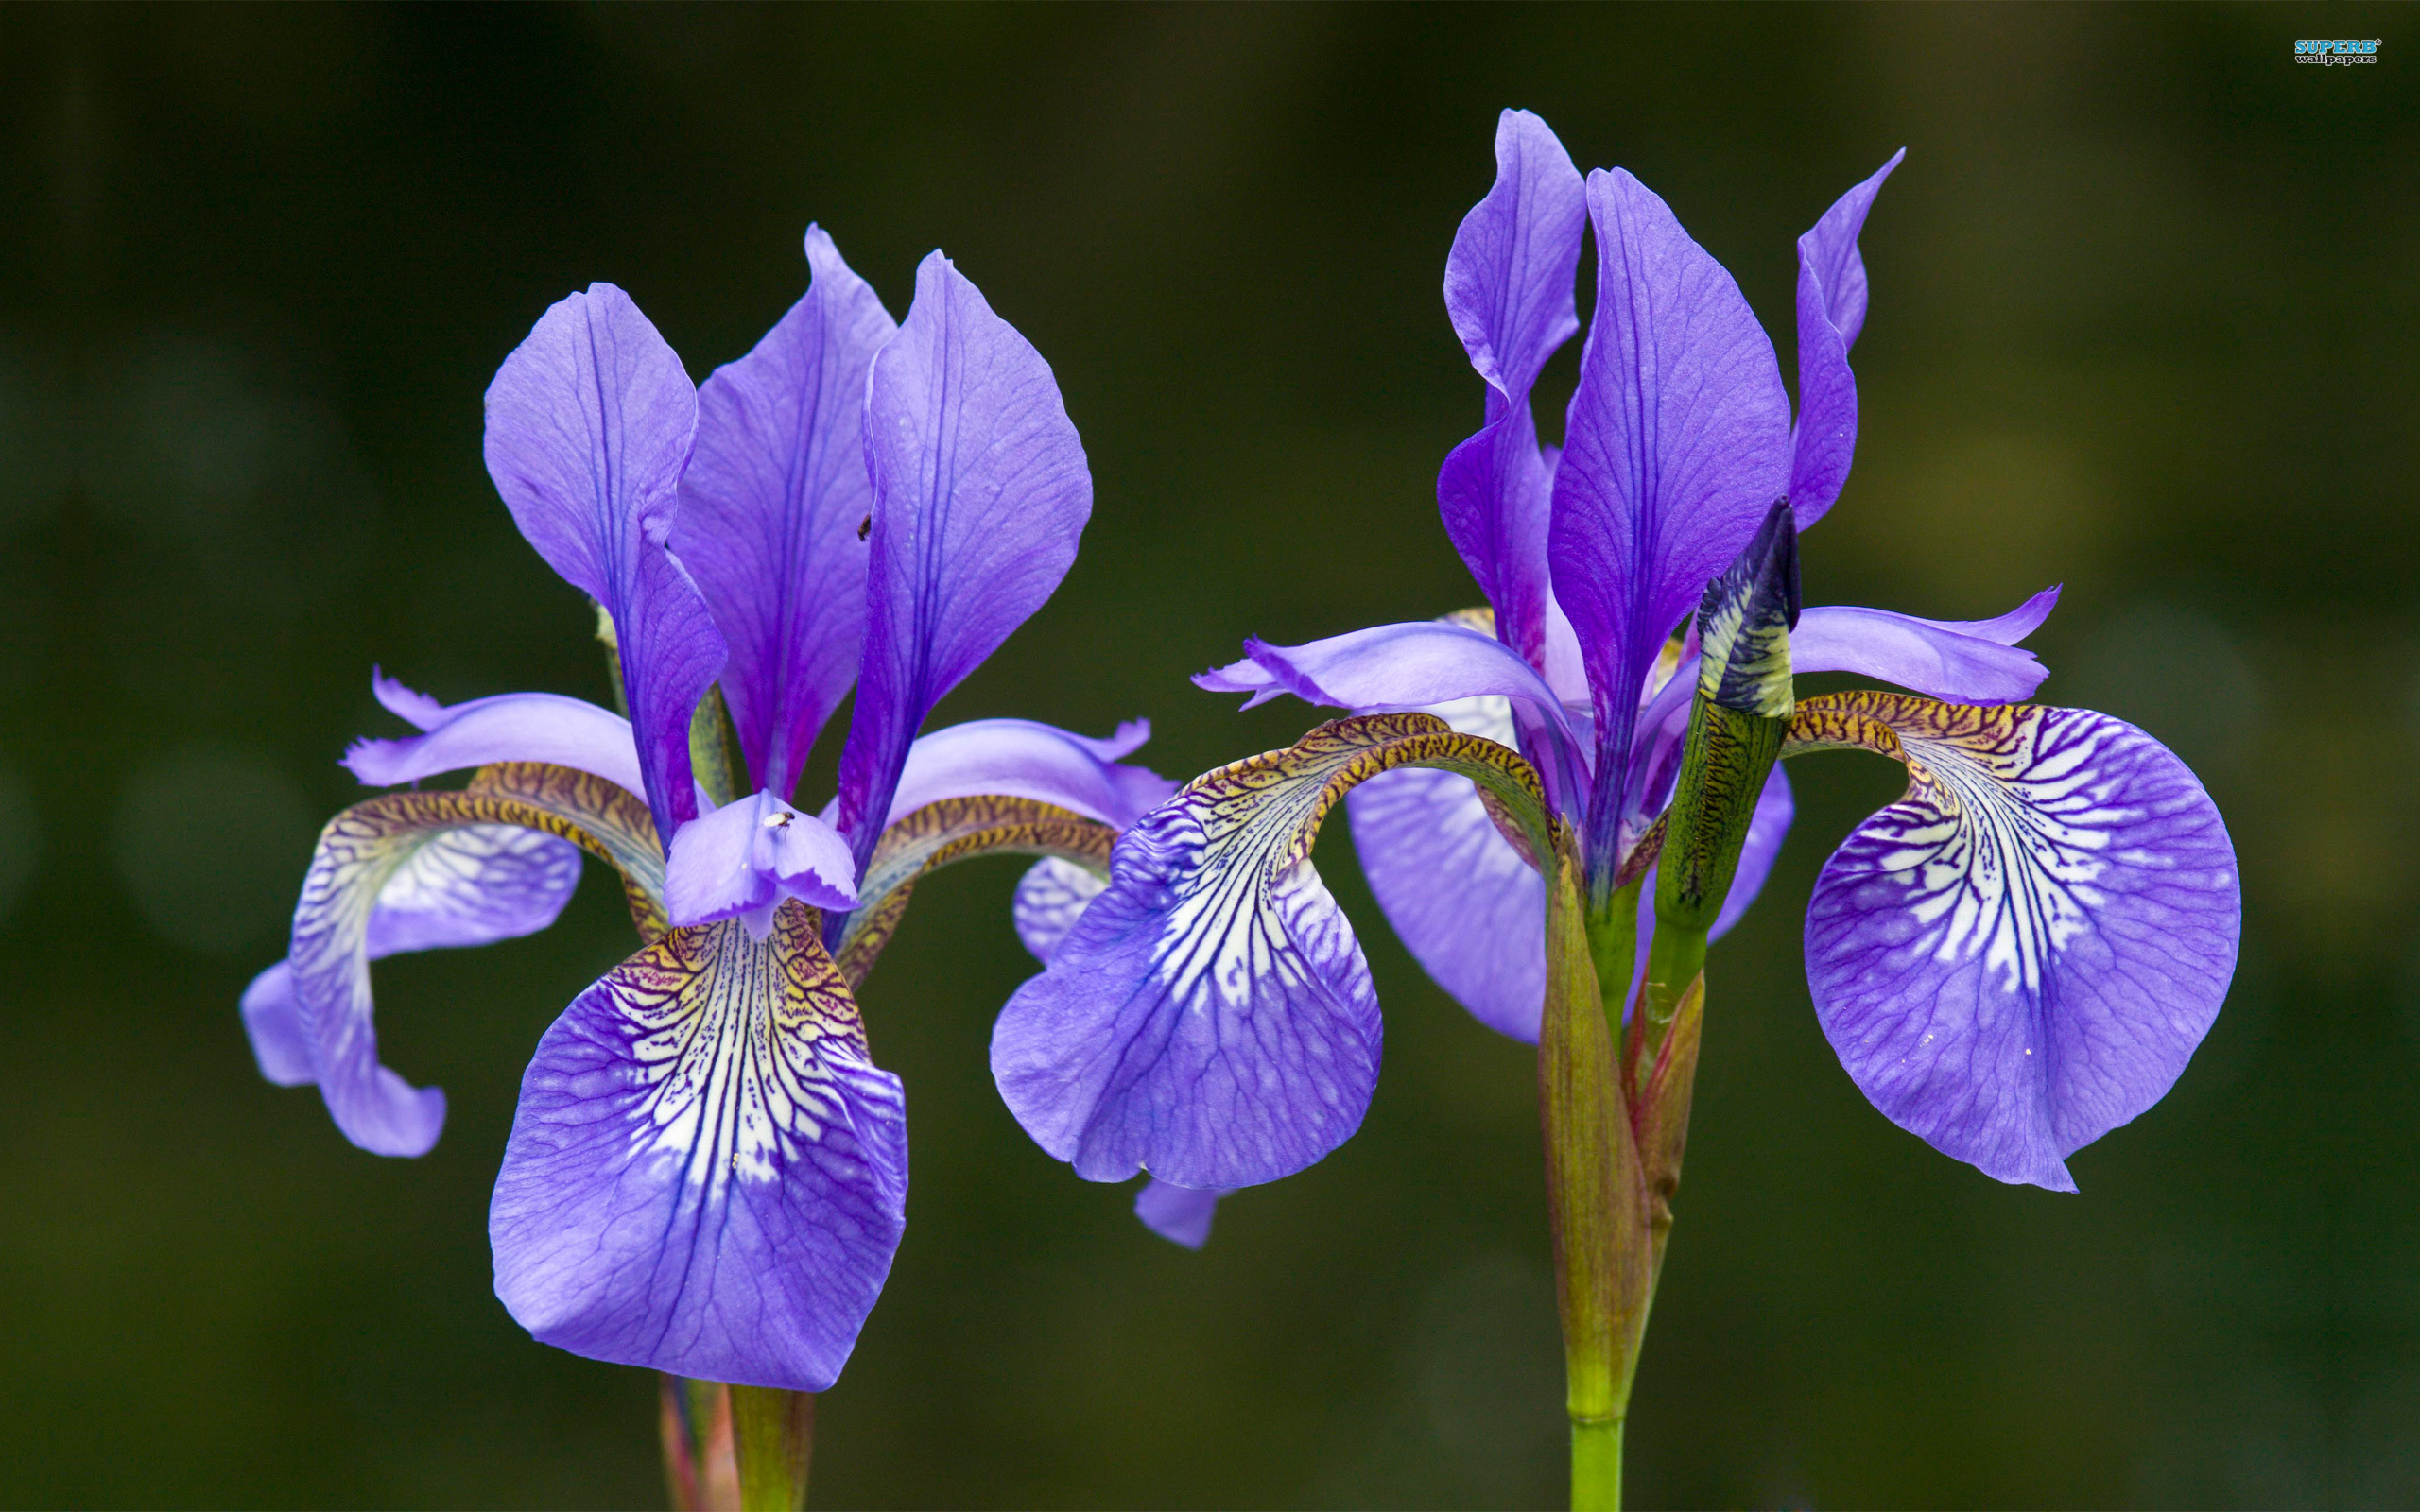 iris flower wallpaper  x, Natural flower